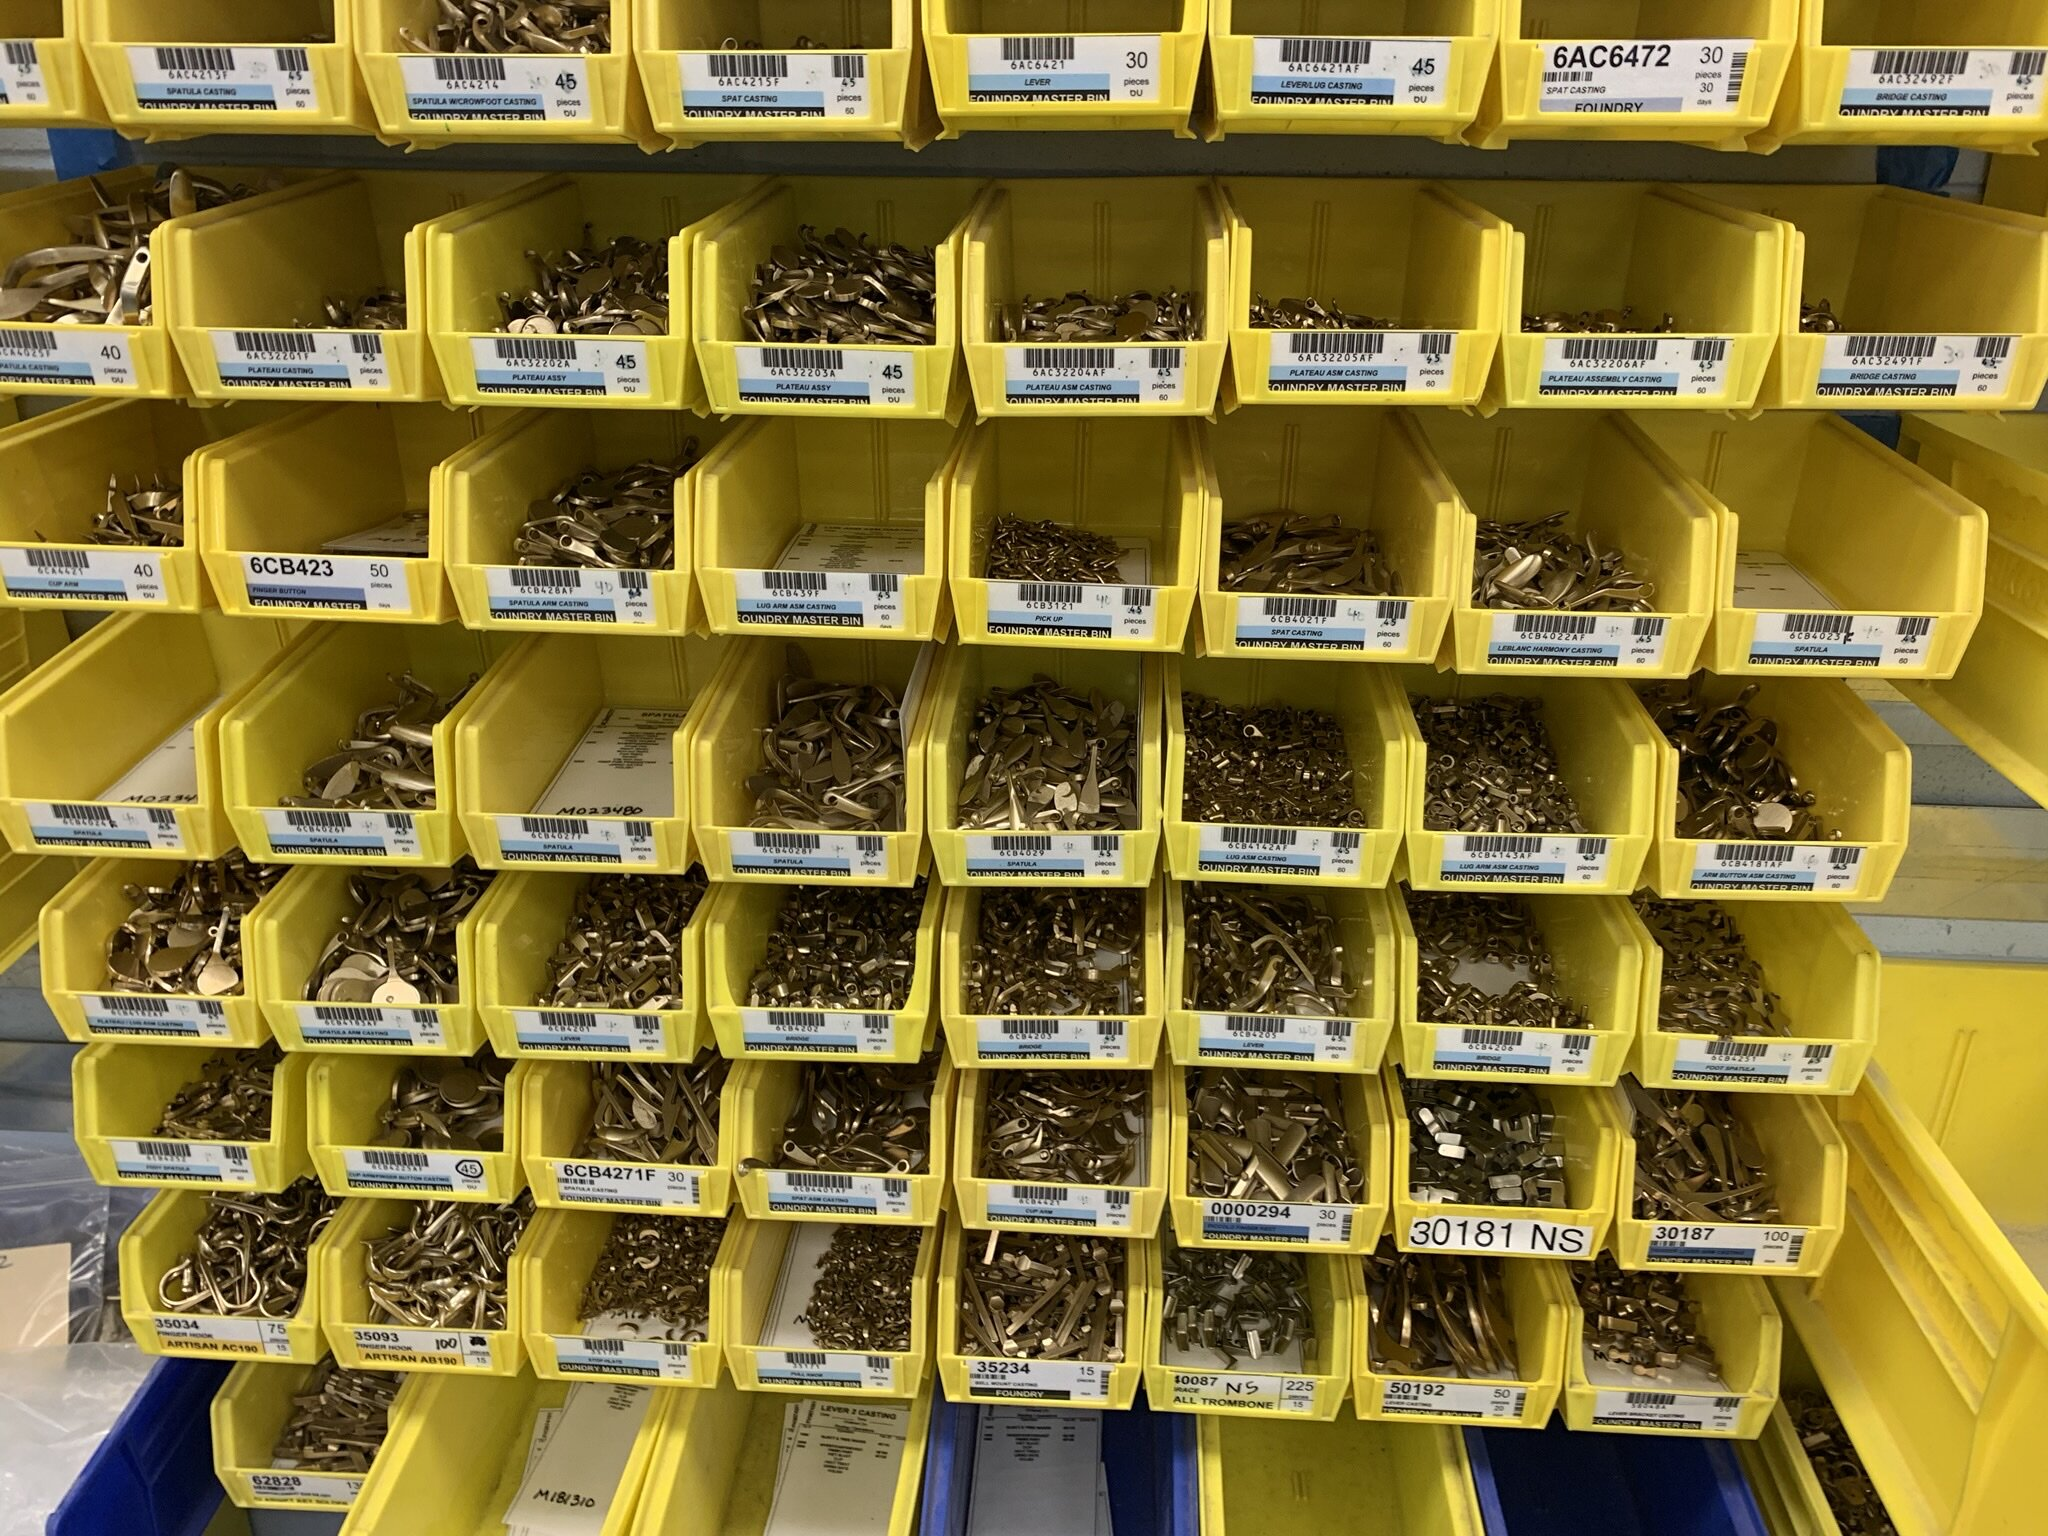 Bins of keys are organized and catalogued for each woodwind family.